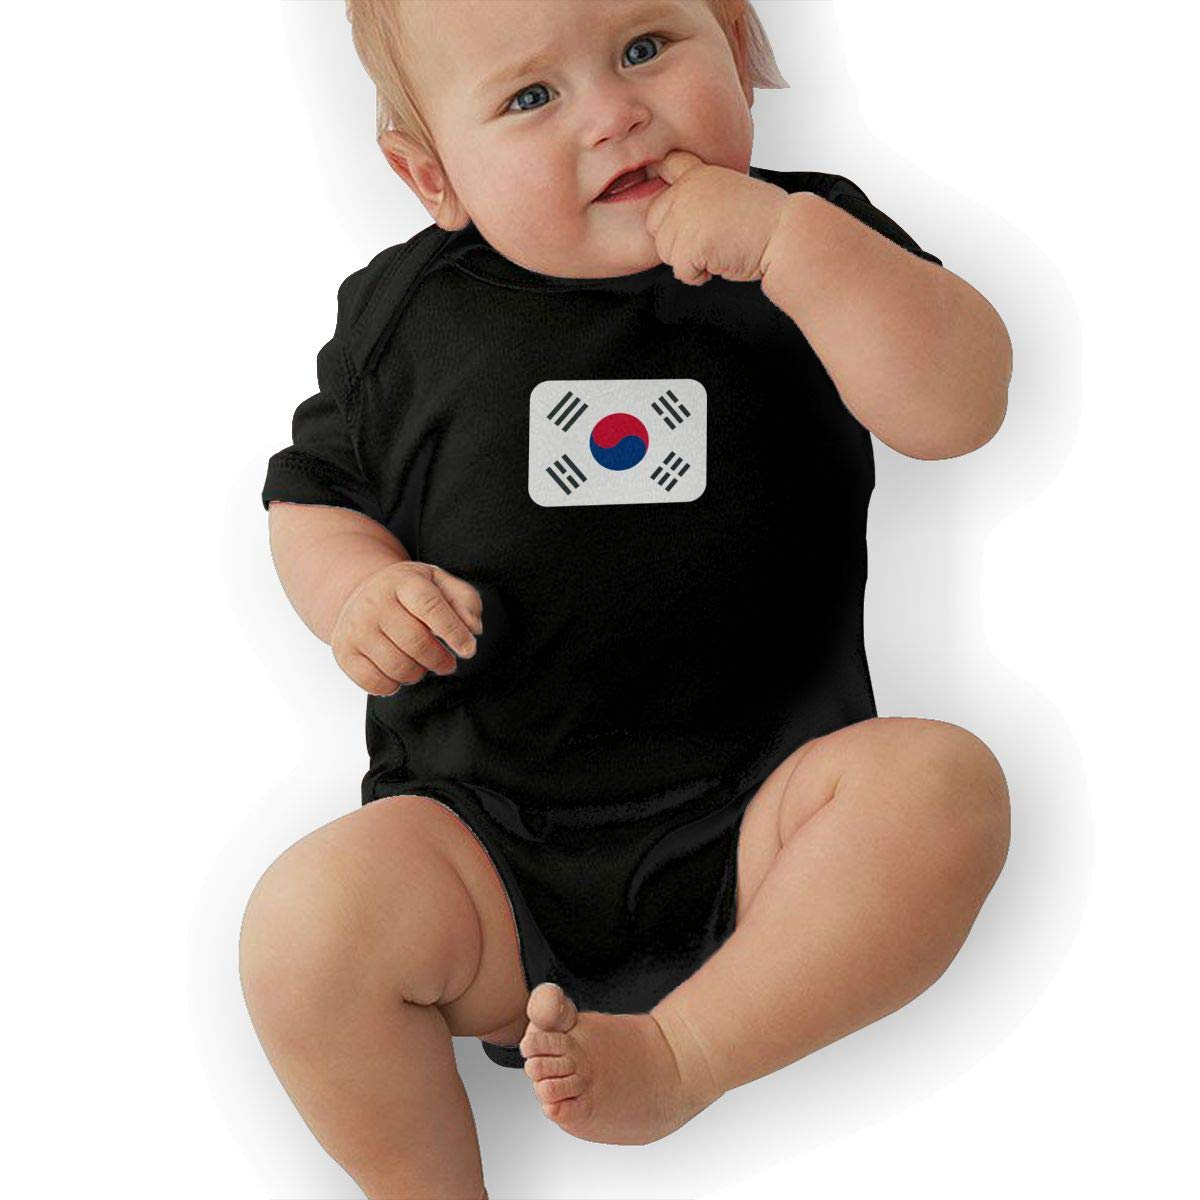 South-Korea Hip Hop Newborn Baby Short Sleeve Bodysuit Romper Infant Summer Clothing